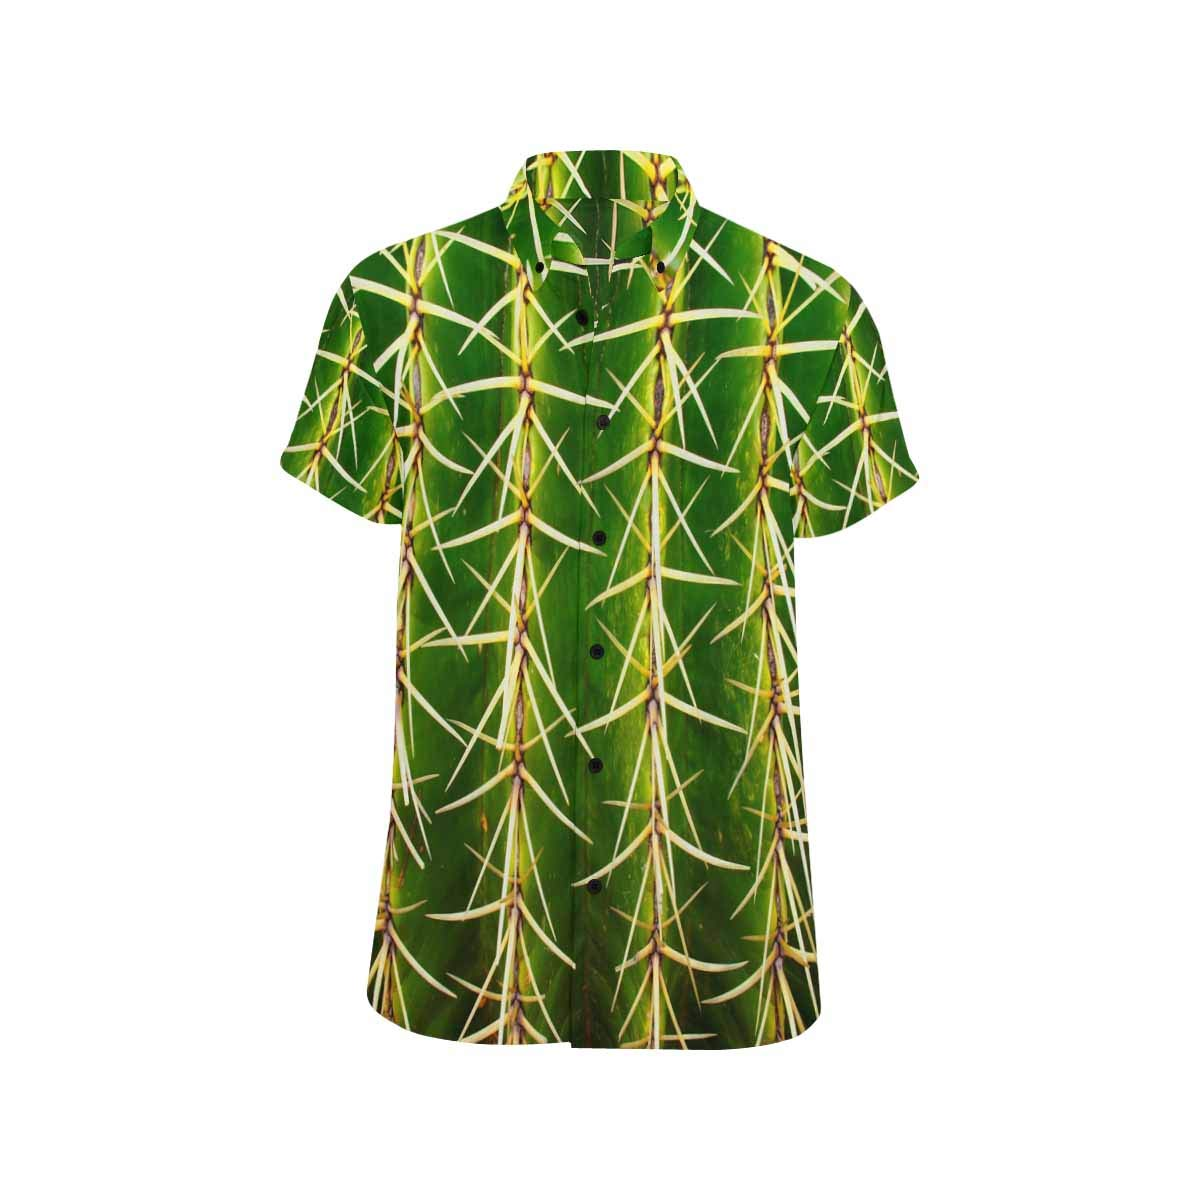 InterestPrint Golden Barrel Cactus Casual Shirt Stand Collar Short Sleeve Beach Top for Men